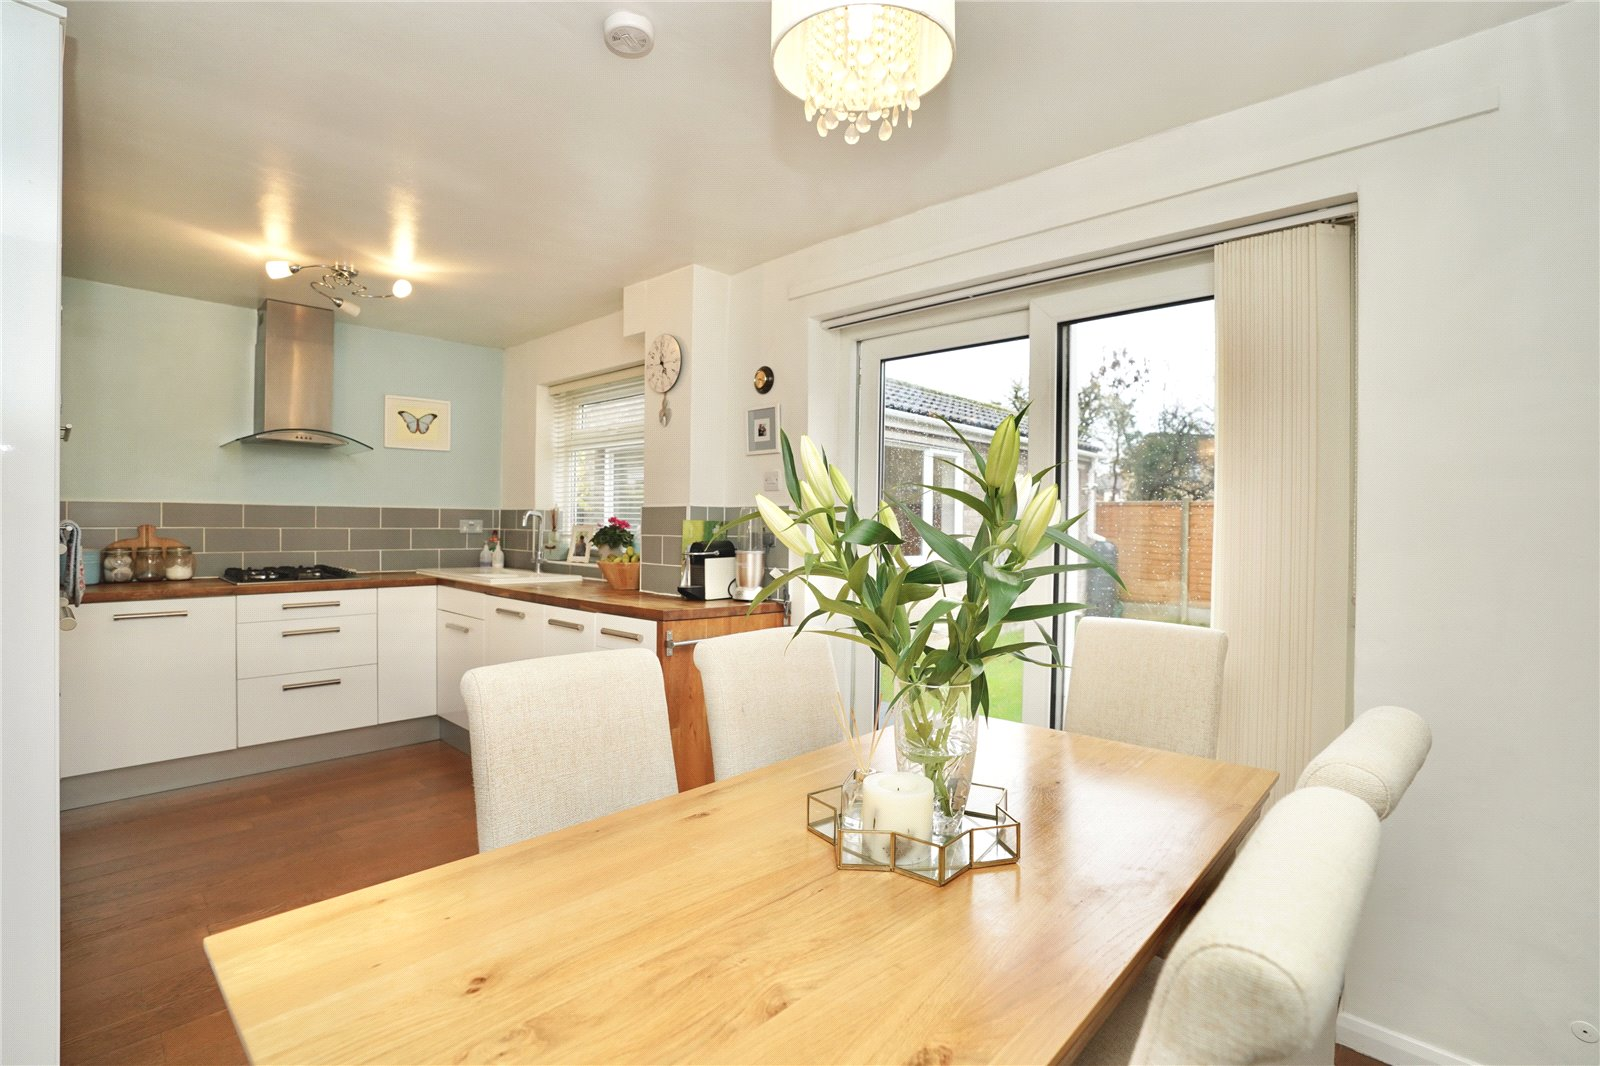 3 bed house for sale in Eaton Ford, Weston Court, PE19 7JX - Property Image 1